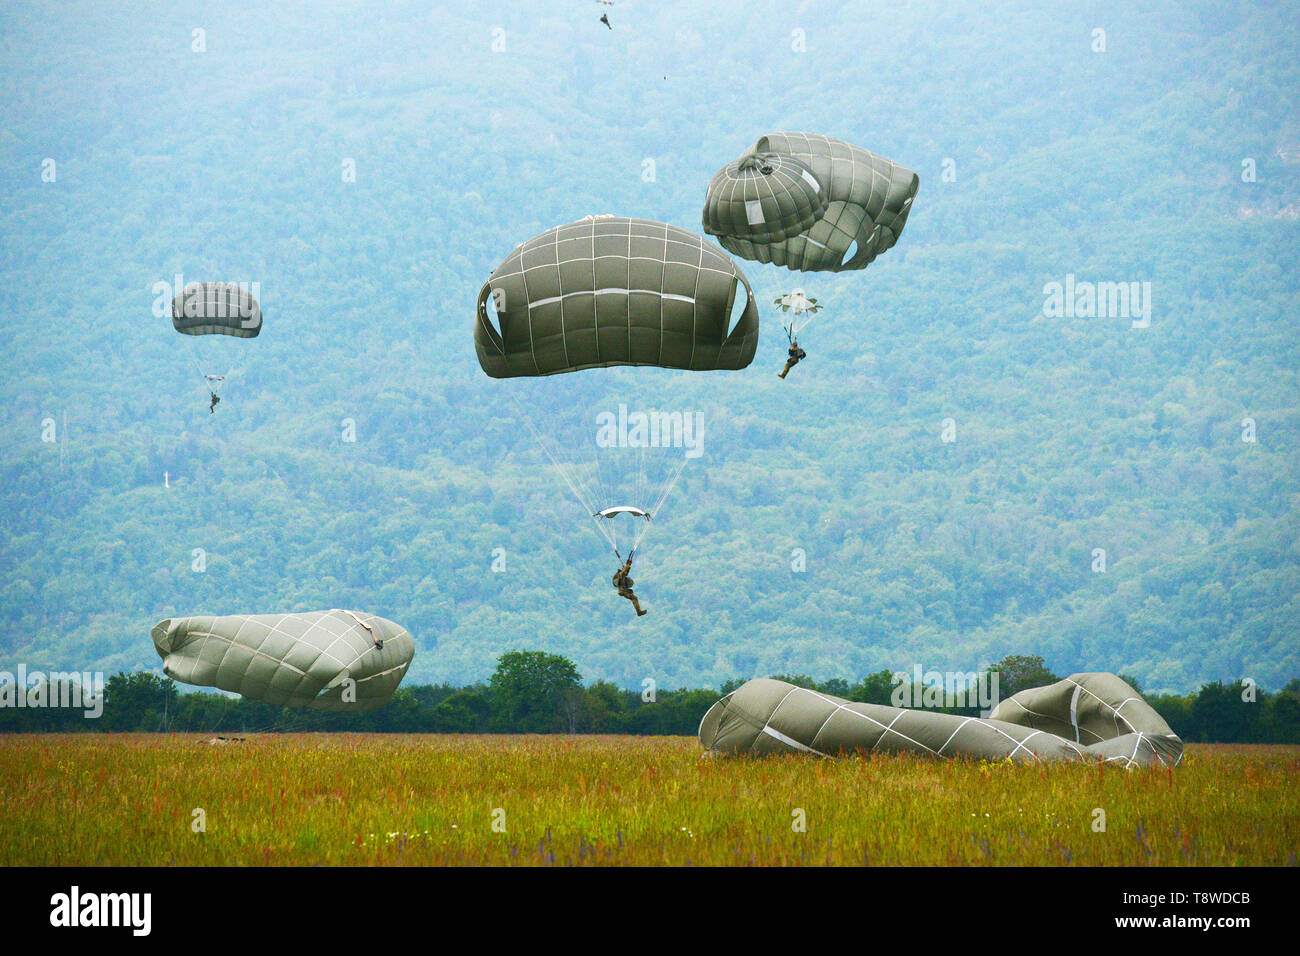 U.S. Army Paratroopers assigned to 54th Brigade Engineer Battalion, 173rd Airborne Brigade, descends onto Juliet Drop Zone, Pordenone, Italy after exiting 12th Combat Aviation Brigade CH-47 Chinook helicopter, during airborne operation, May 9, 2019. The 173rd Airborne Brigade is the U.S. Army's Contingency Response Force in Europe, capable of projecting ready forces anywhere in the U.S. European, Africa or Central Commands' areas of responsibility. (U.S. Army's Photos by Paolo Bovo) - Stock Image